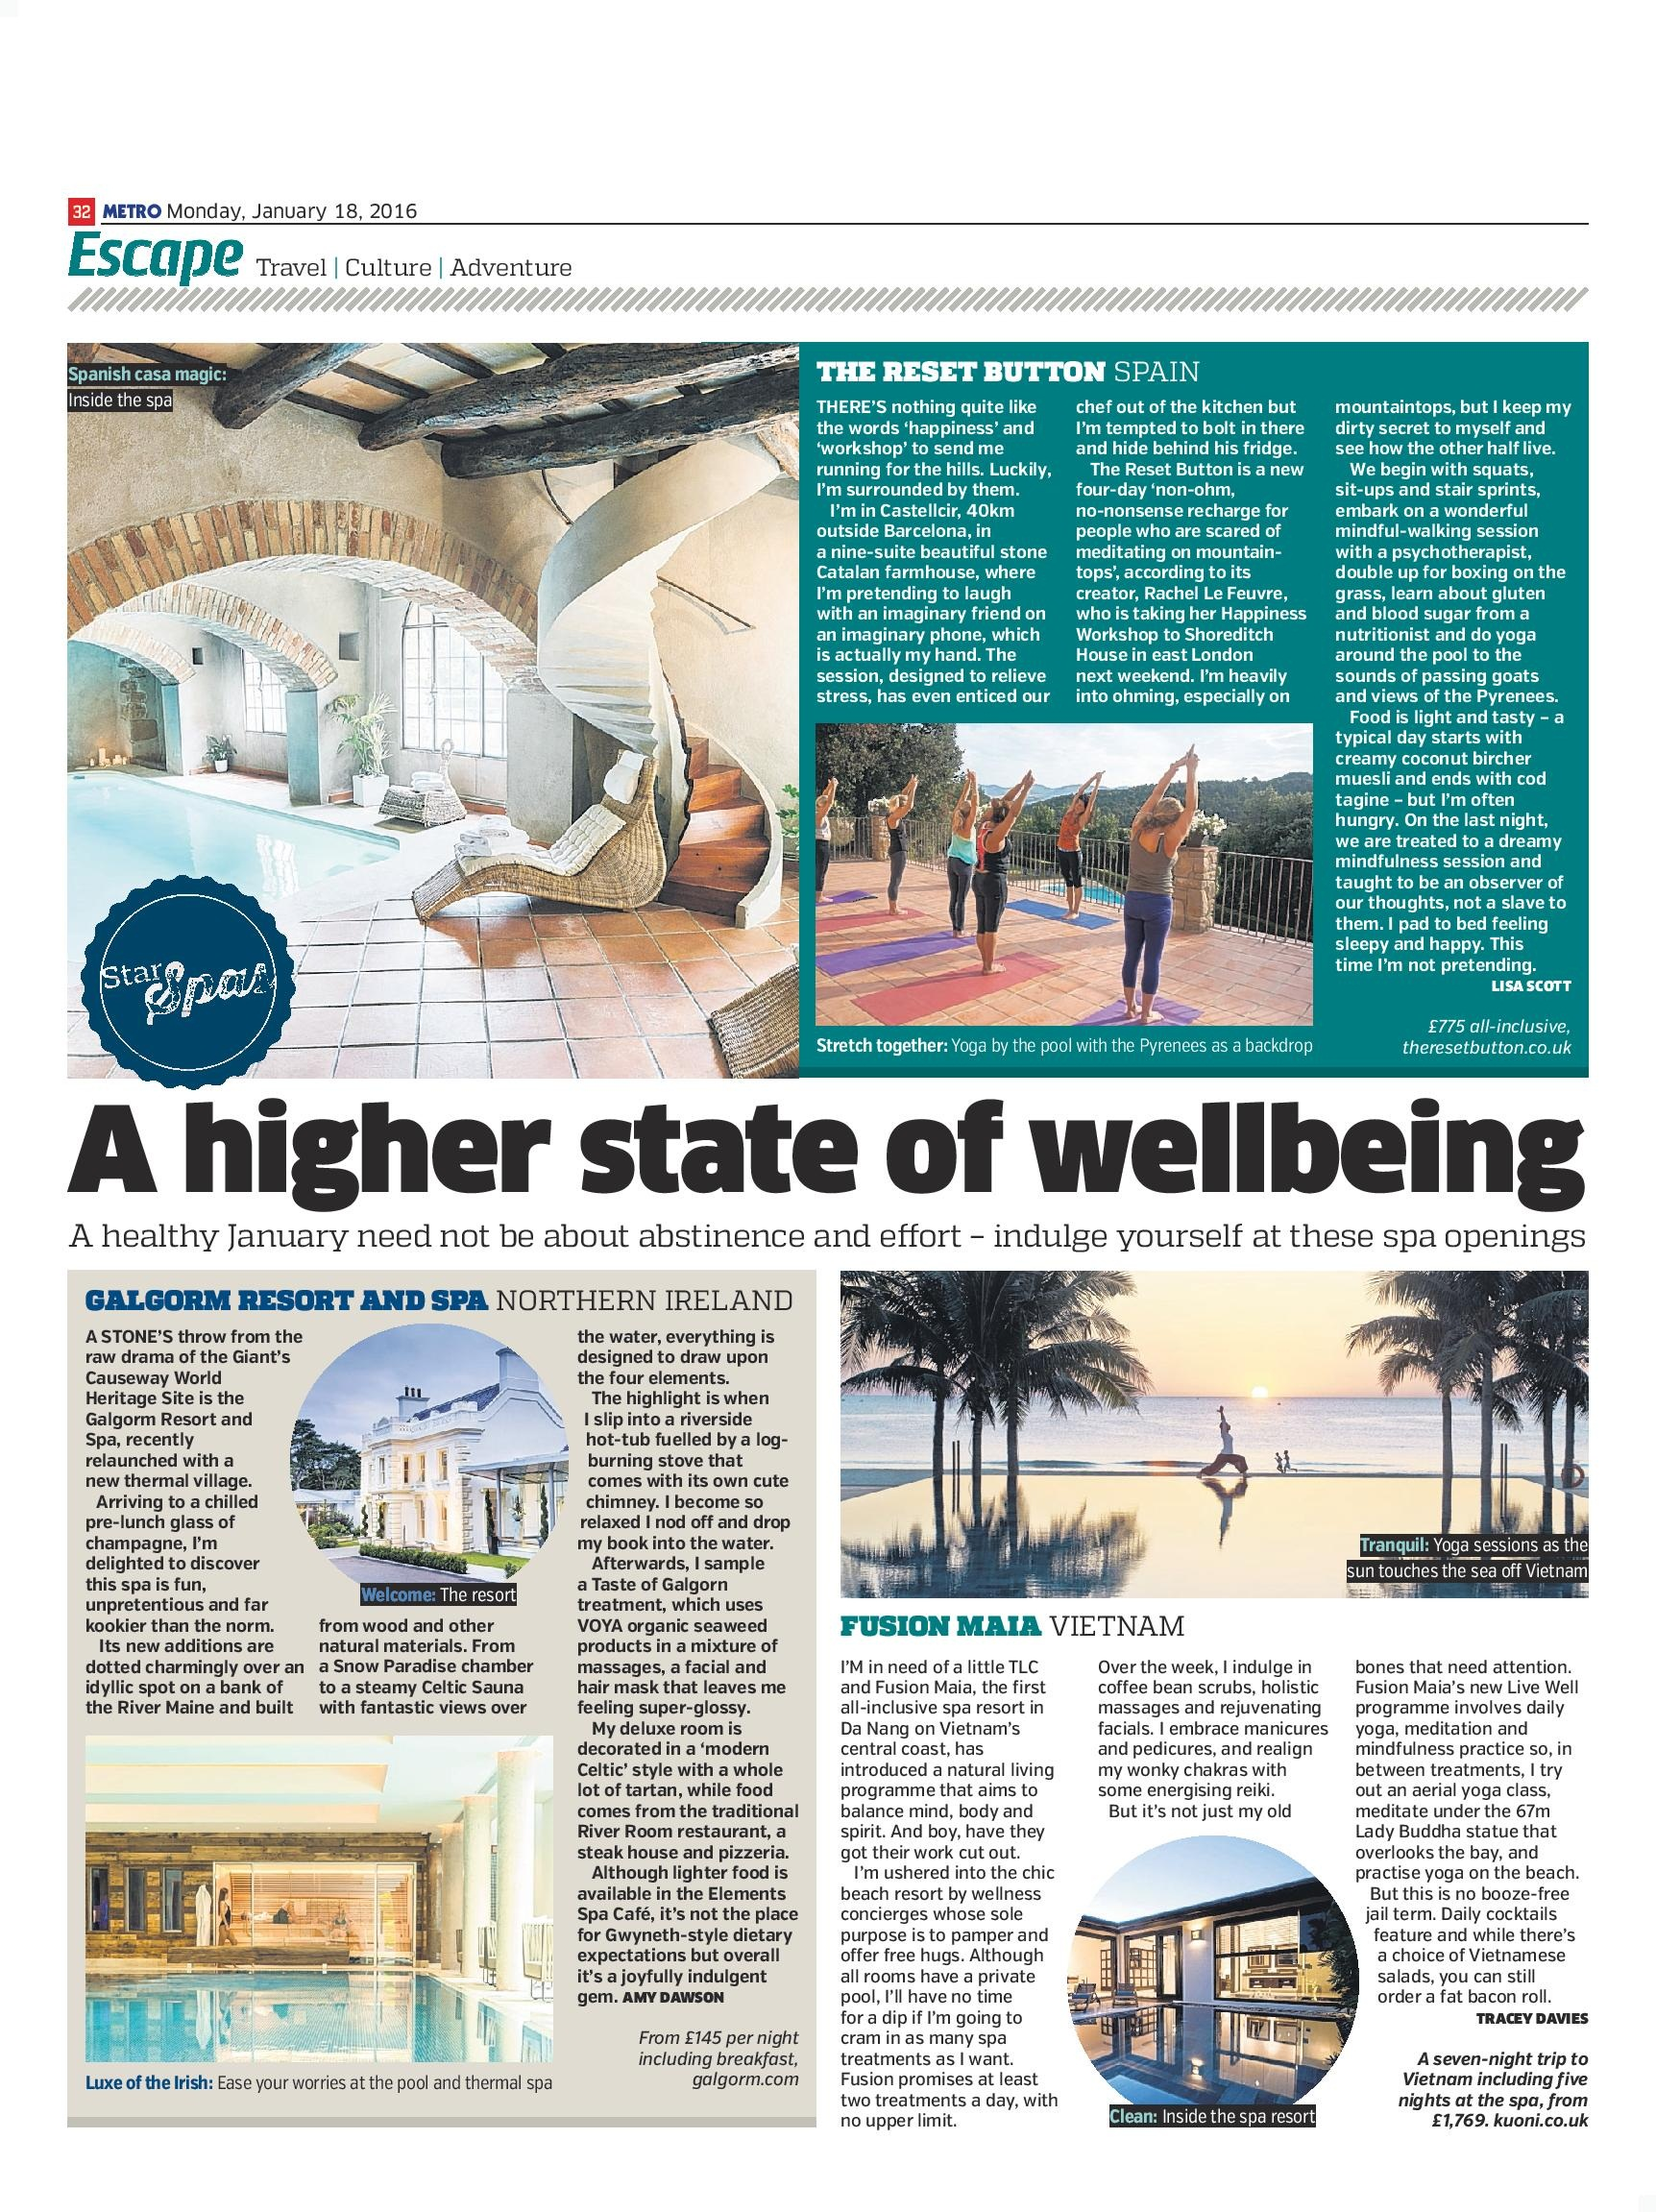 A Higher State of Wellbeing: Galgorm Resort and Spa, Northern Ireland (Metro, 18th Jan 2016)